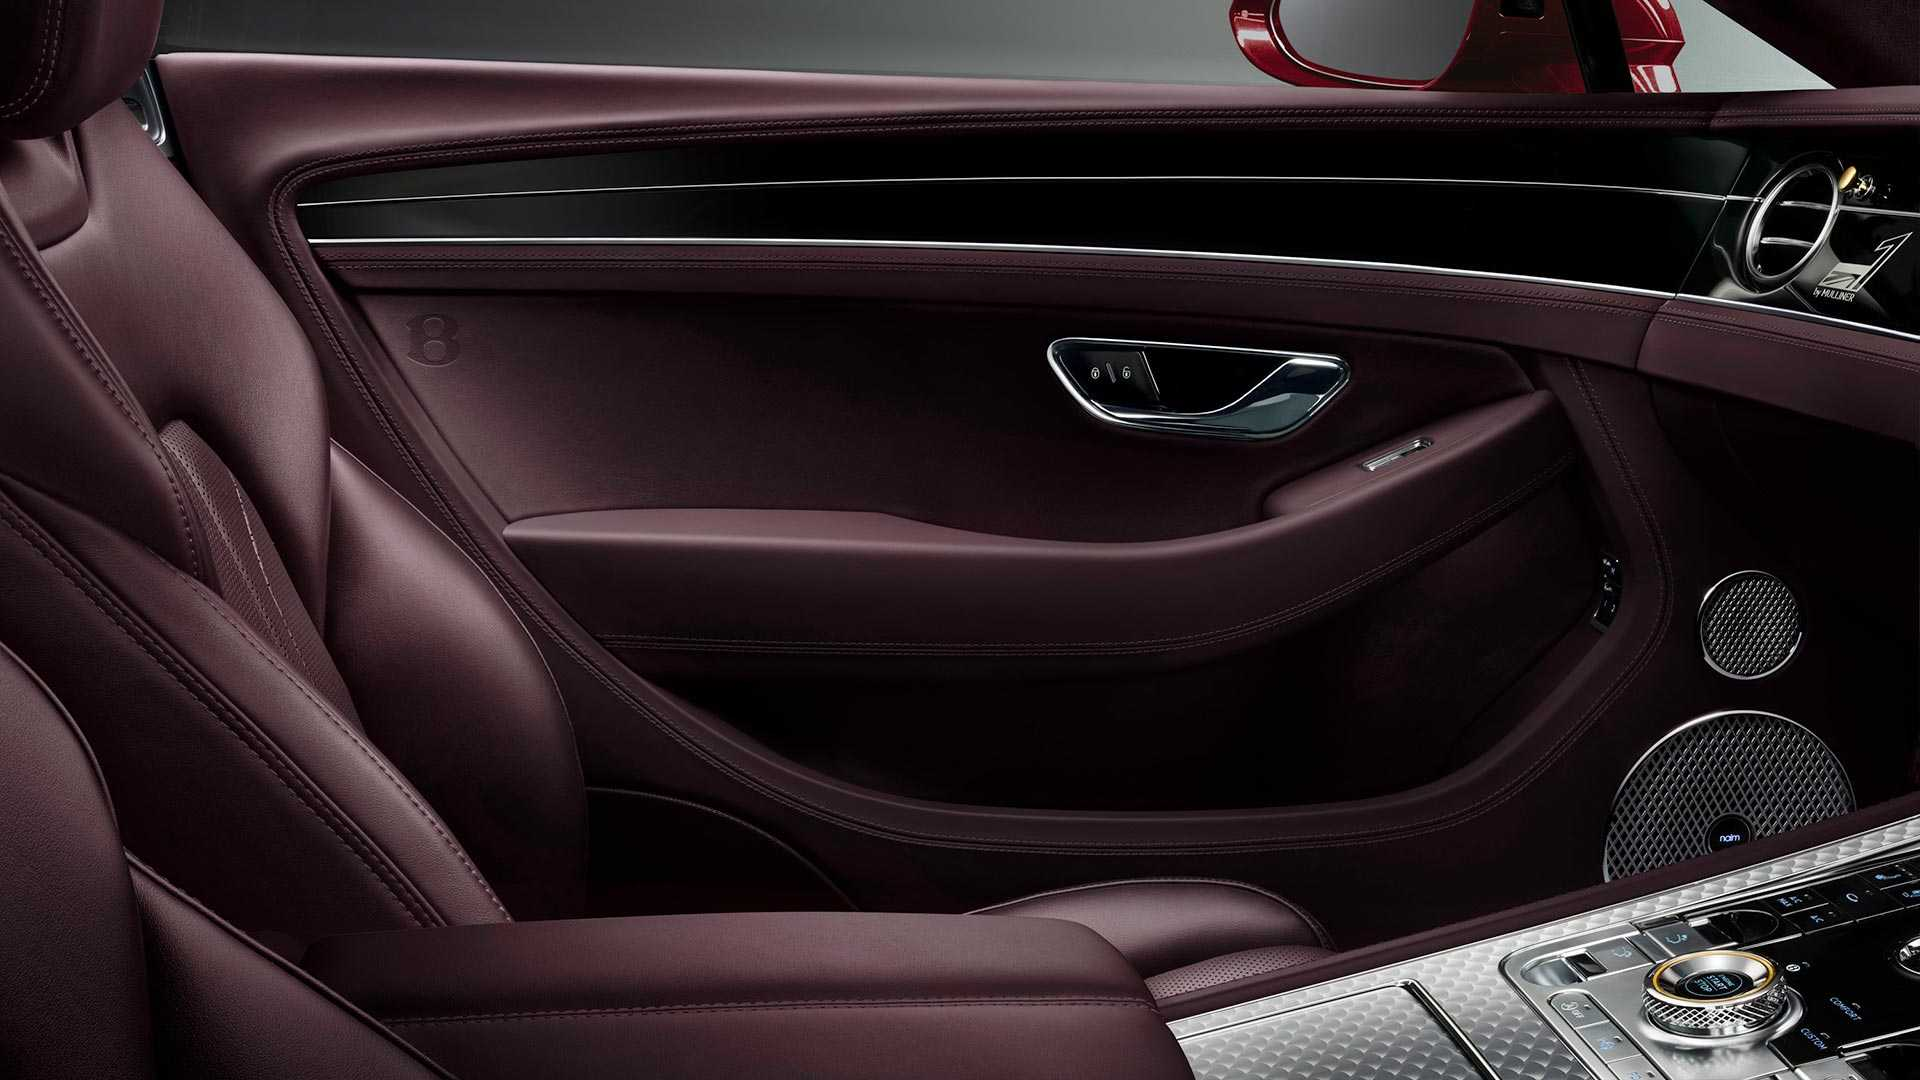 2020 Bentley Continental GT Convertible Number 1 Edition by Mulliner Interior Wallpapers (10)